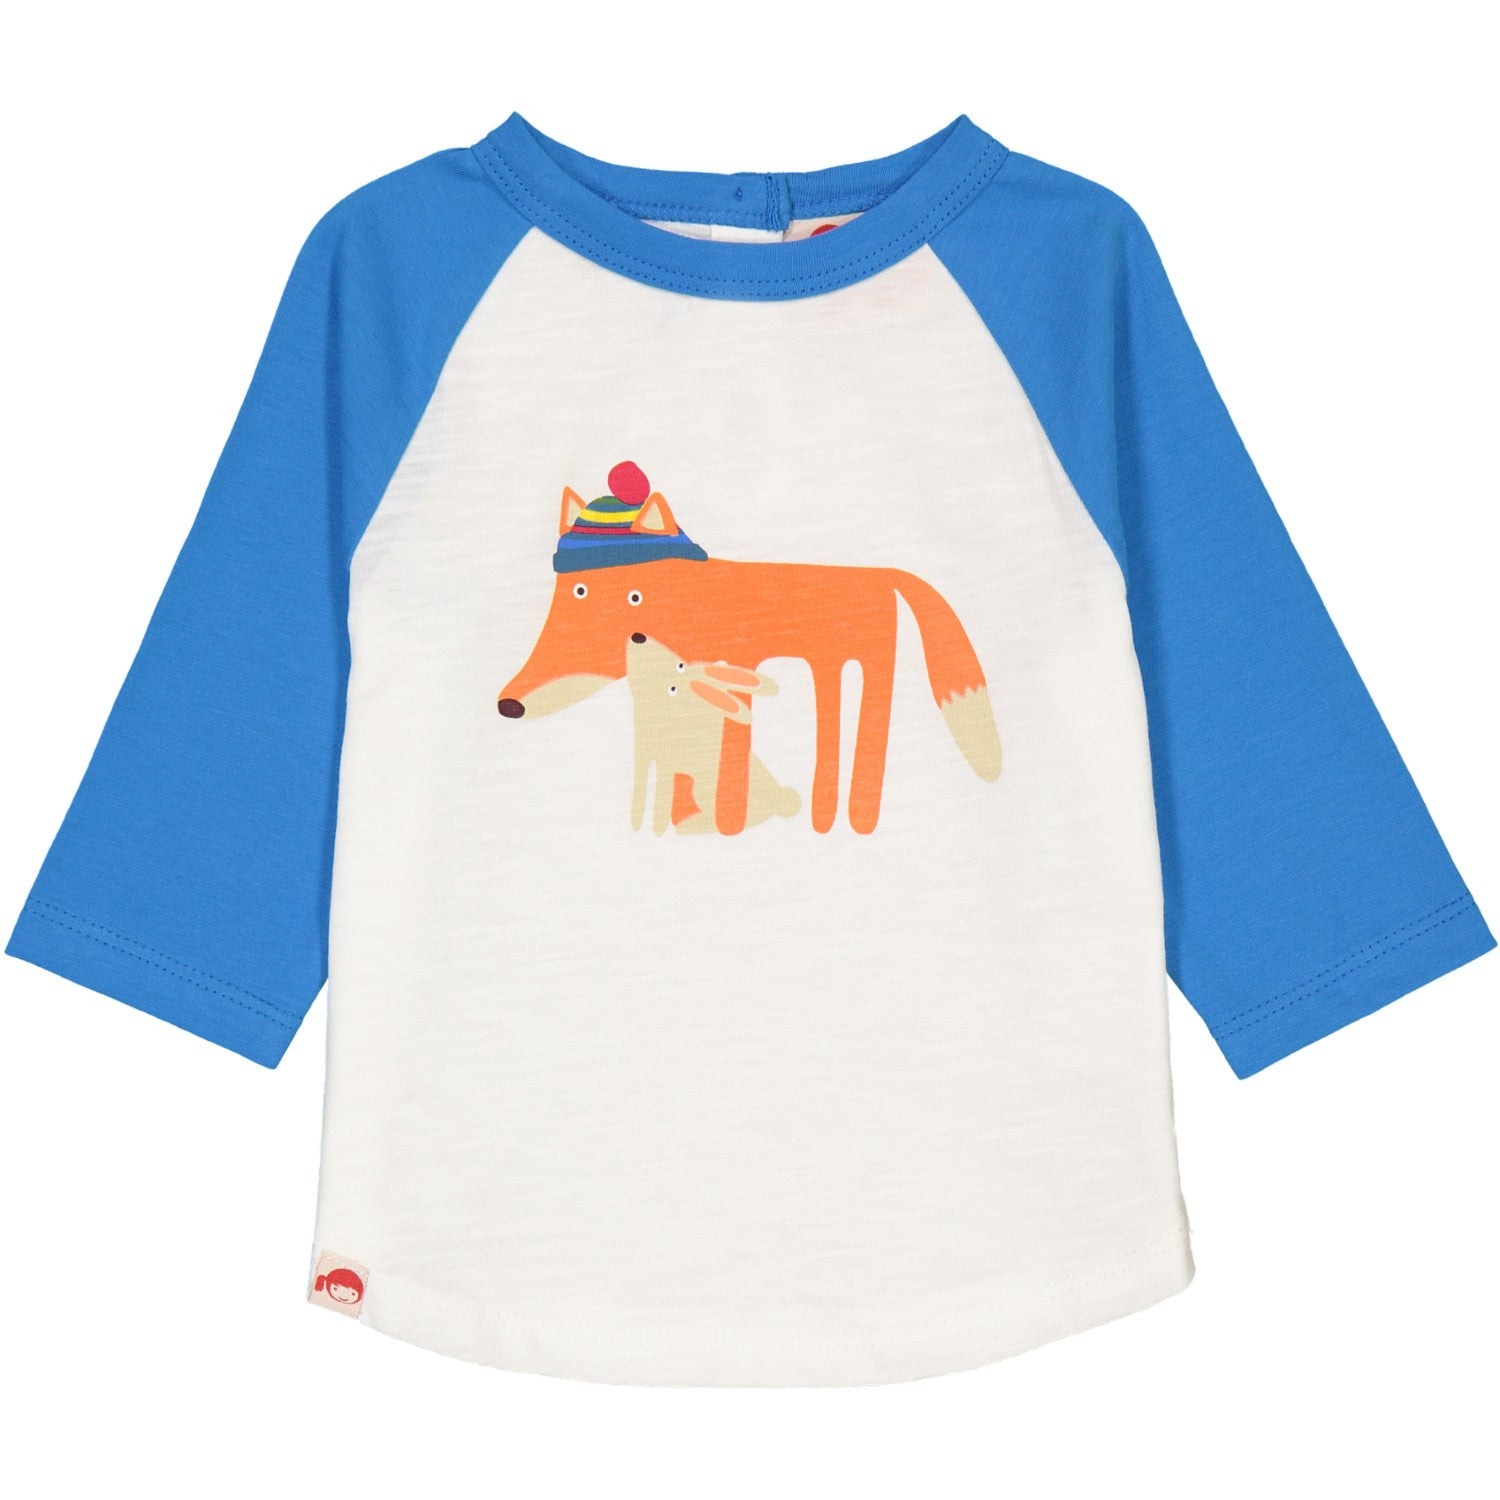 Fox & Rabbit Blue Raglan Tee